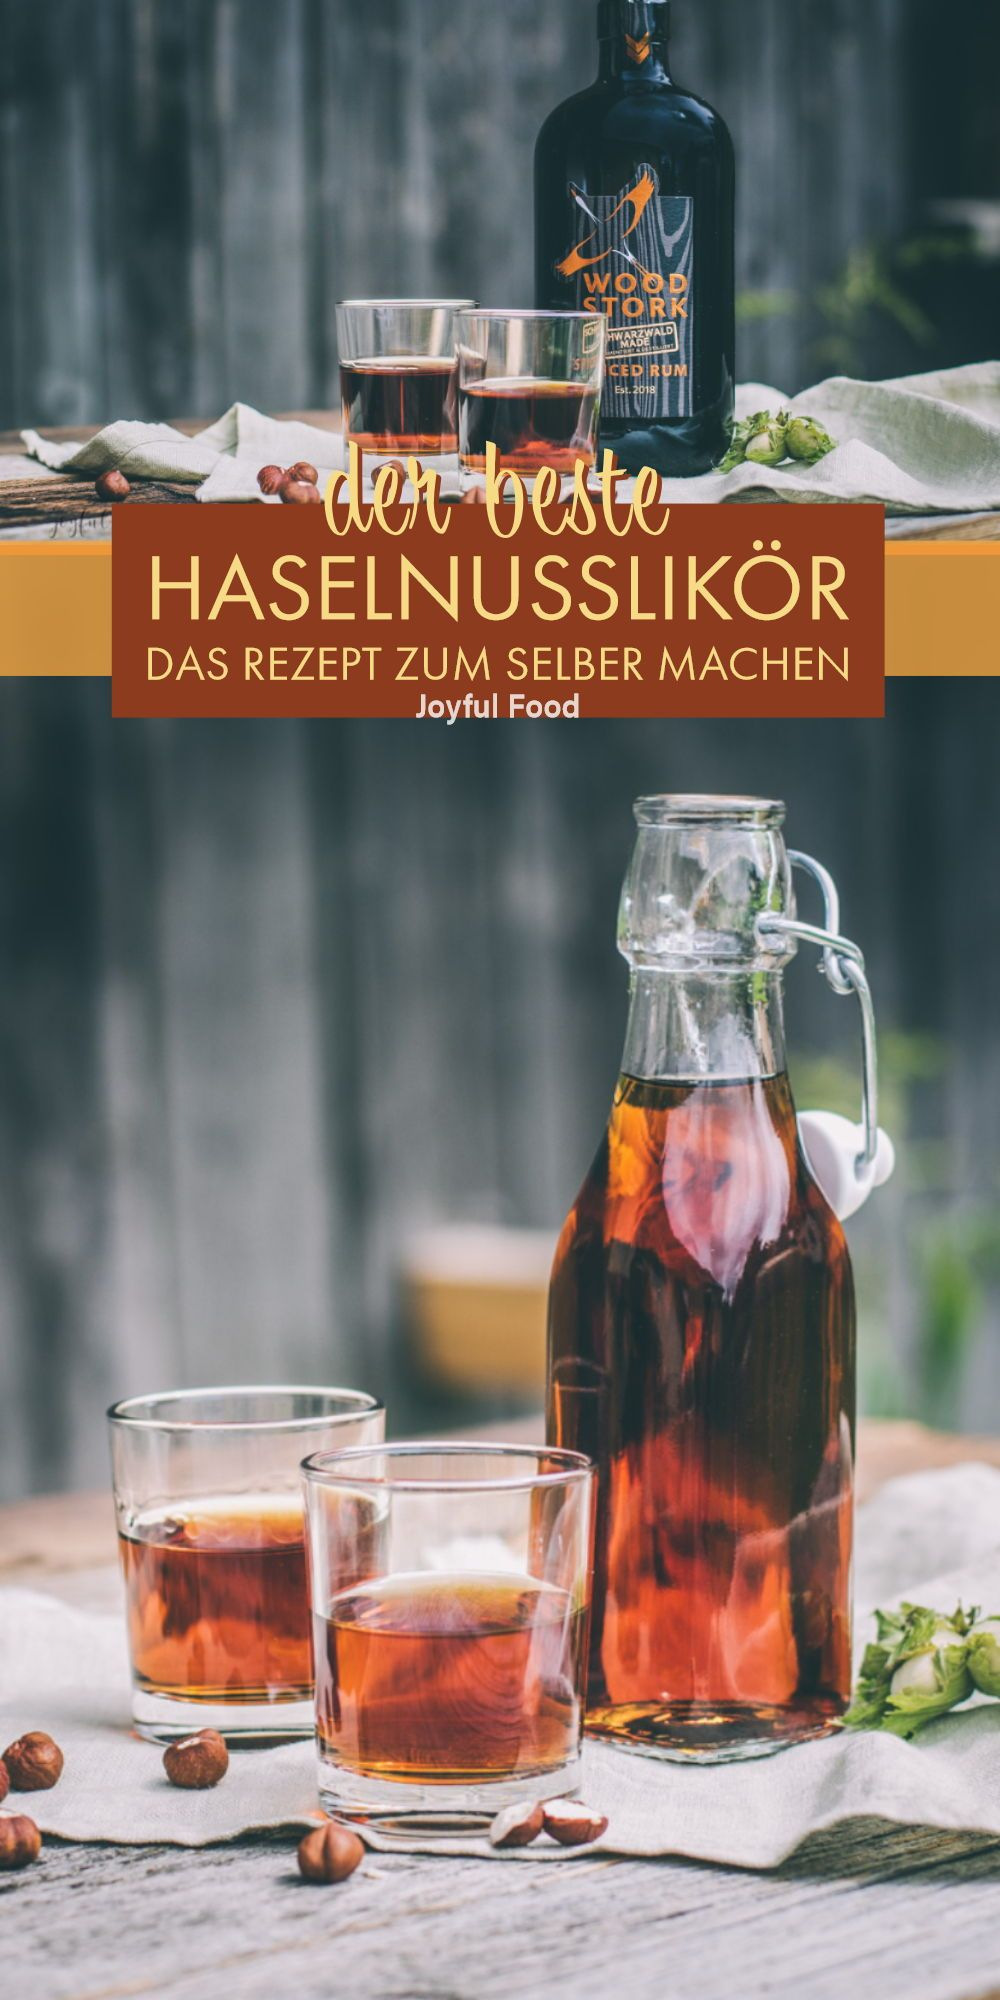 Photo of Feines Haselnusslikör Rezept mit Wood Stork Spiced Rum | Joyful Food